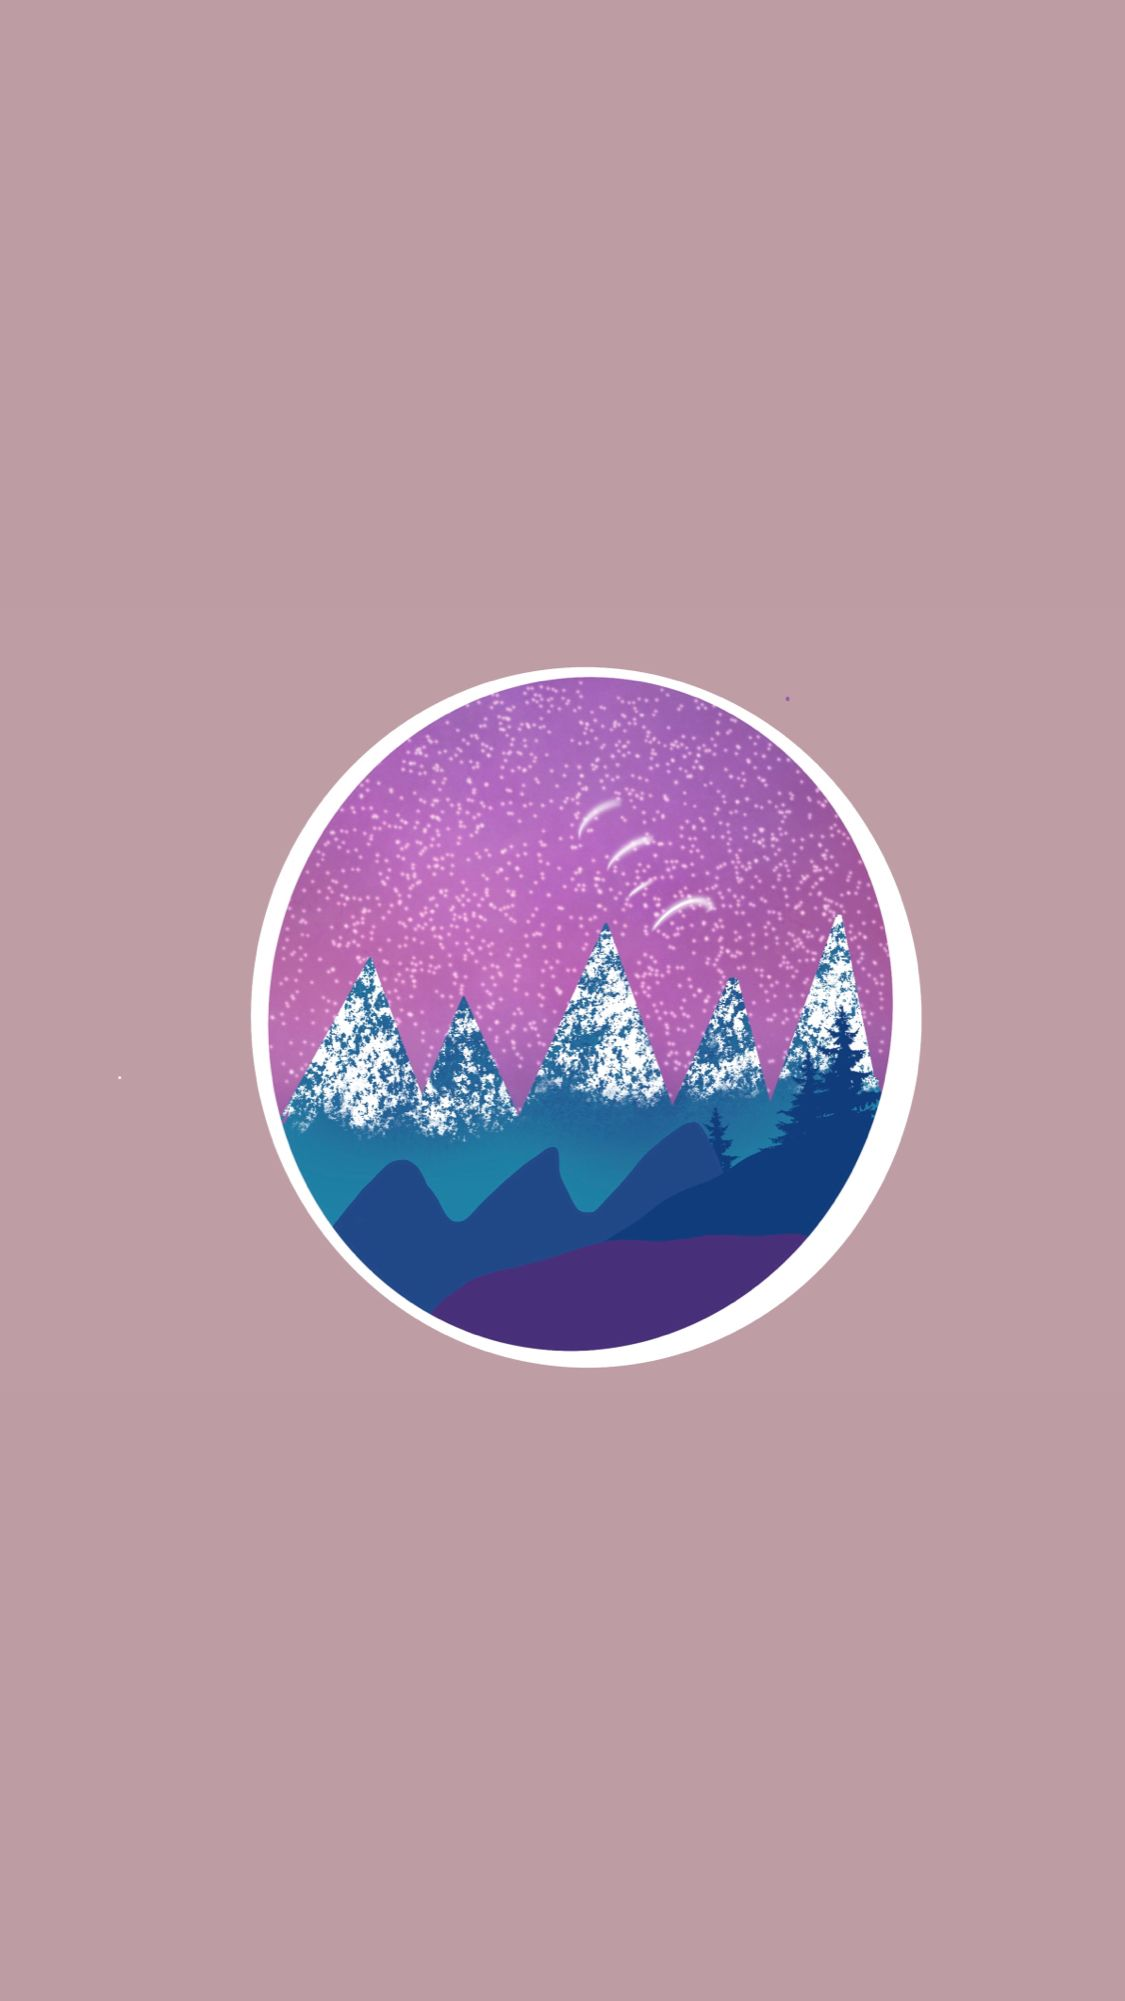 Designs You Can Make With procreate App